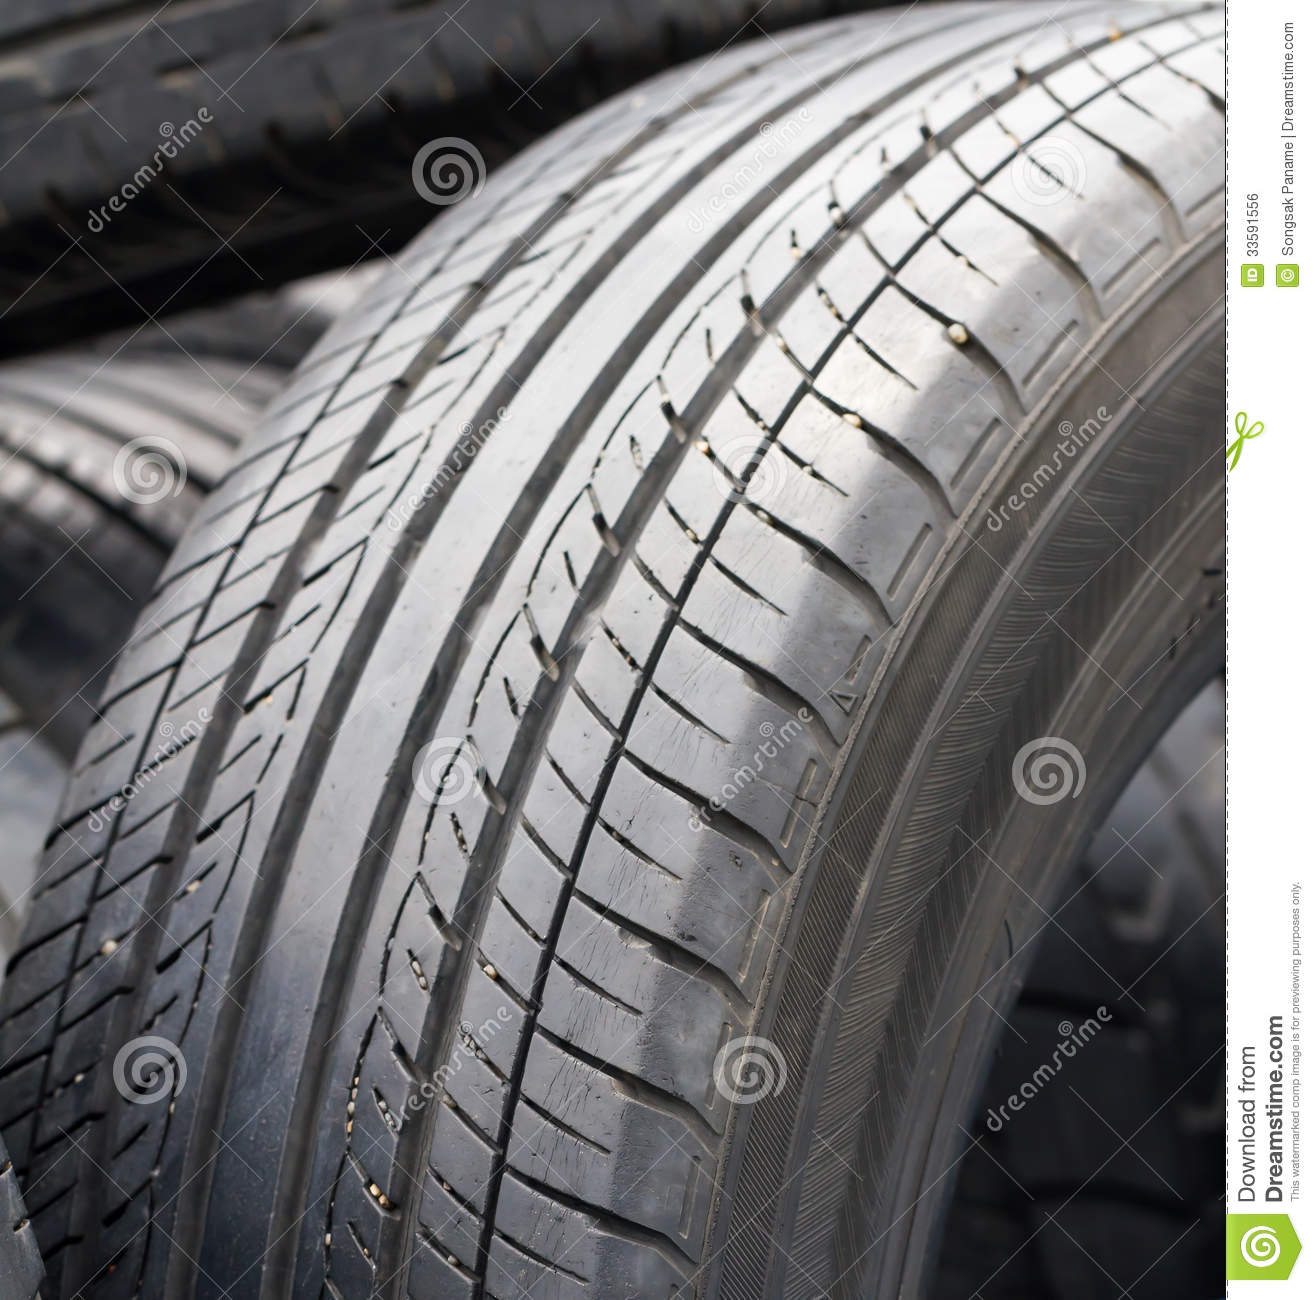 Old Tires Royalty Free Stock Image - Image: 33591556